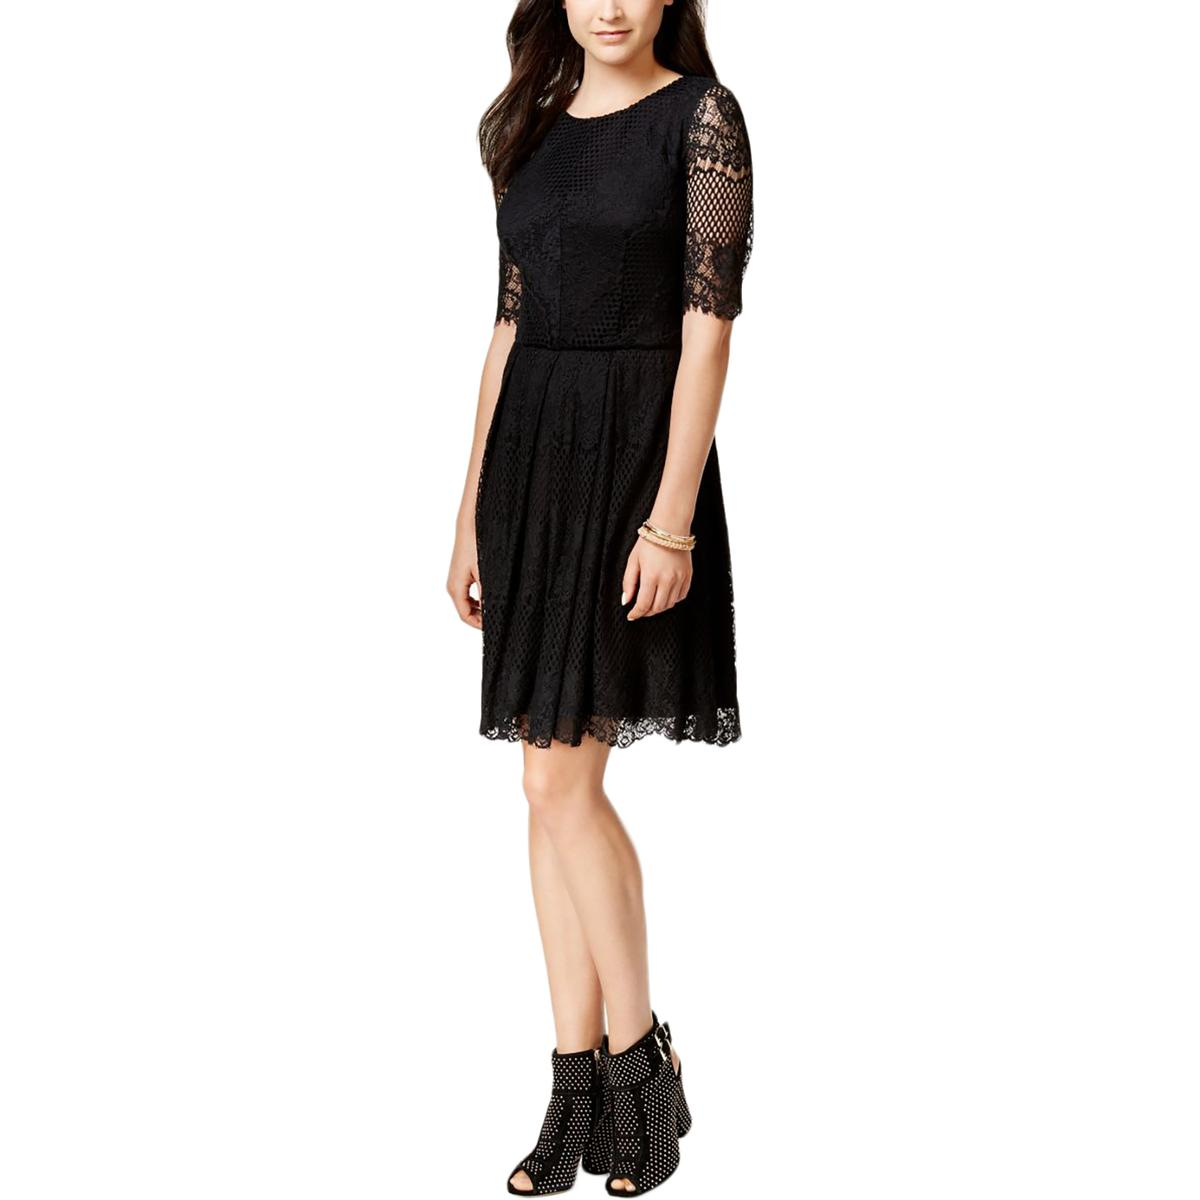 Jessica Simpson Womens Pleated Lace Cocktail Dress